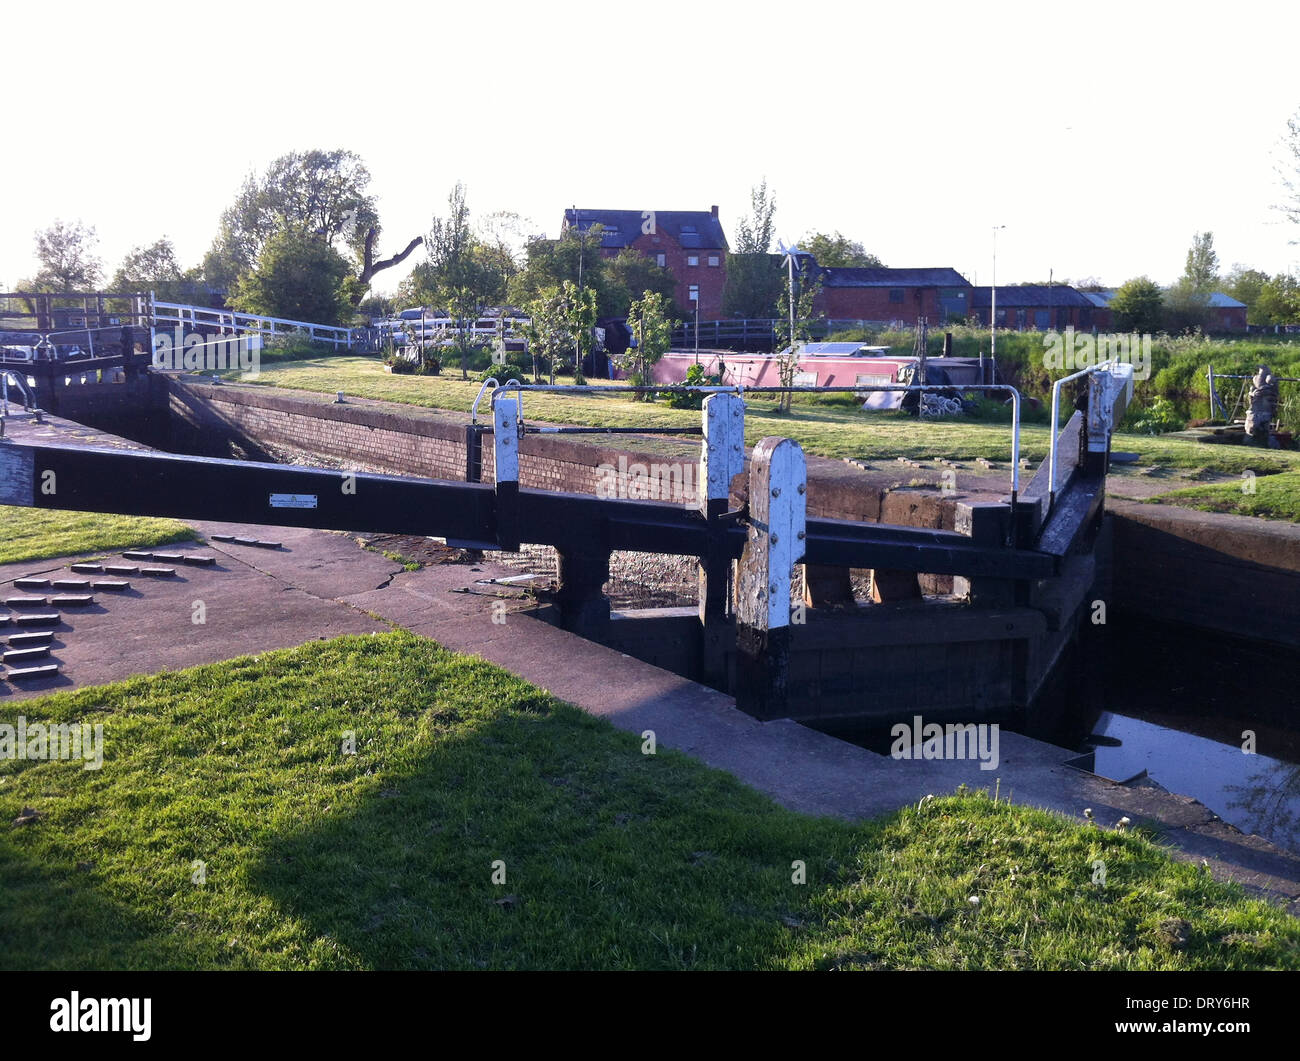 Lock Gates at Sileby on the River Soar in Leicestershire, England - Stock Image